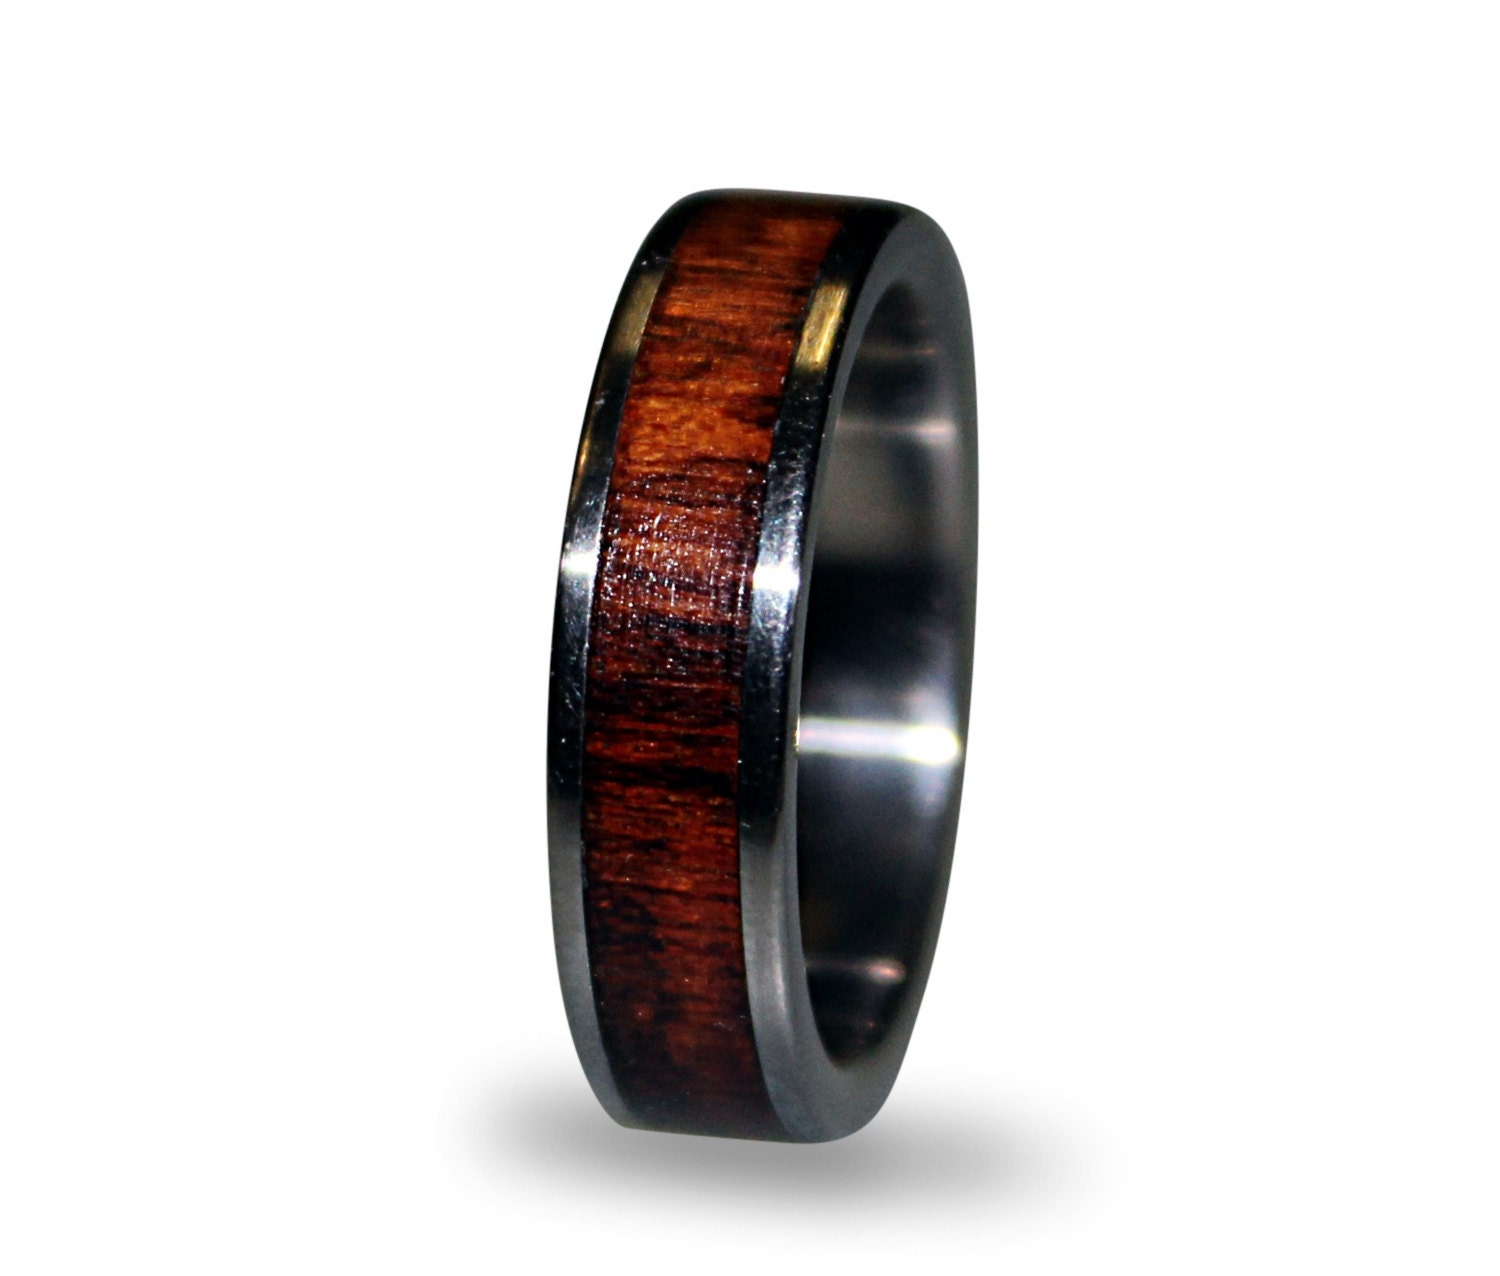 arrow rugged black s set band wood wedding products burl hunter titanium ring bands inlay mens between steel rings usa antler men deer and women hunting inlaid silver